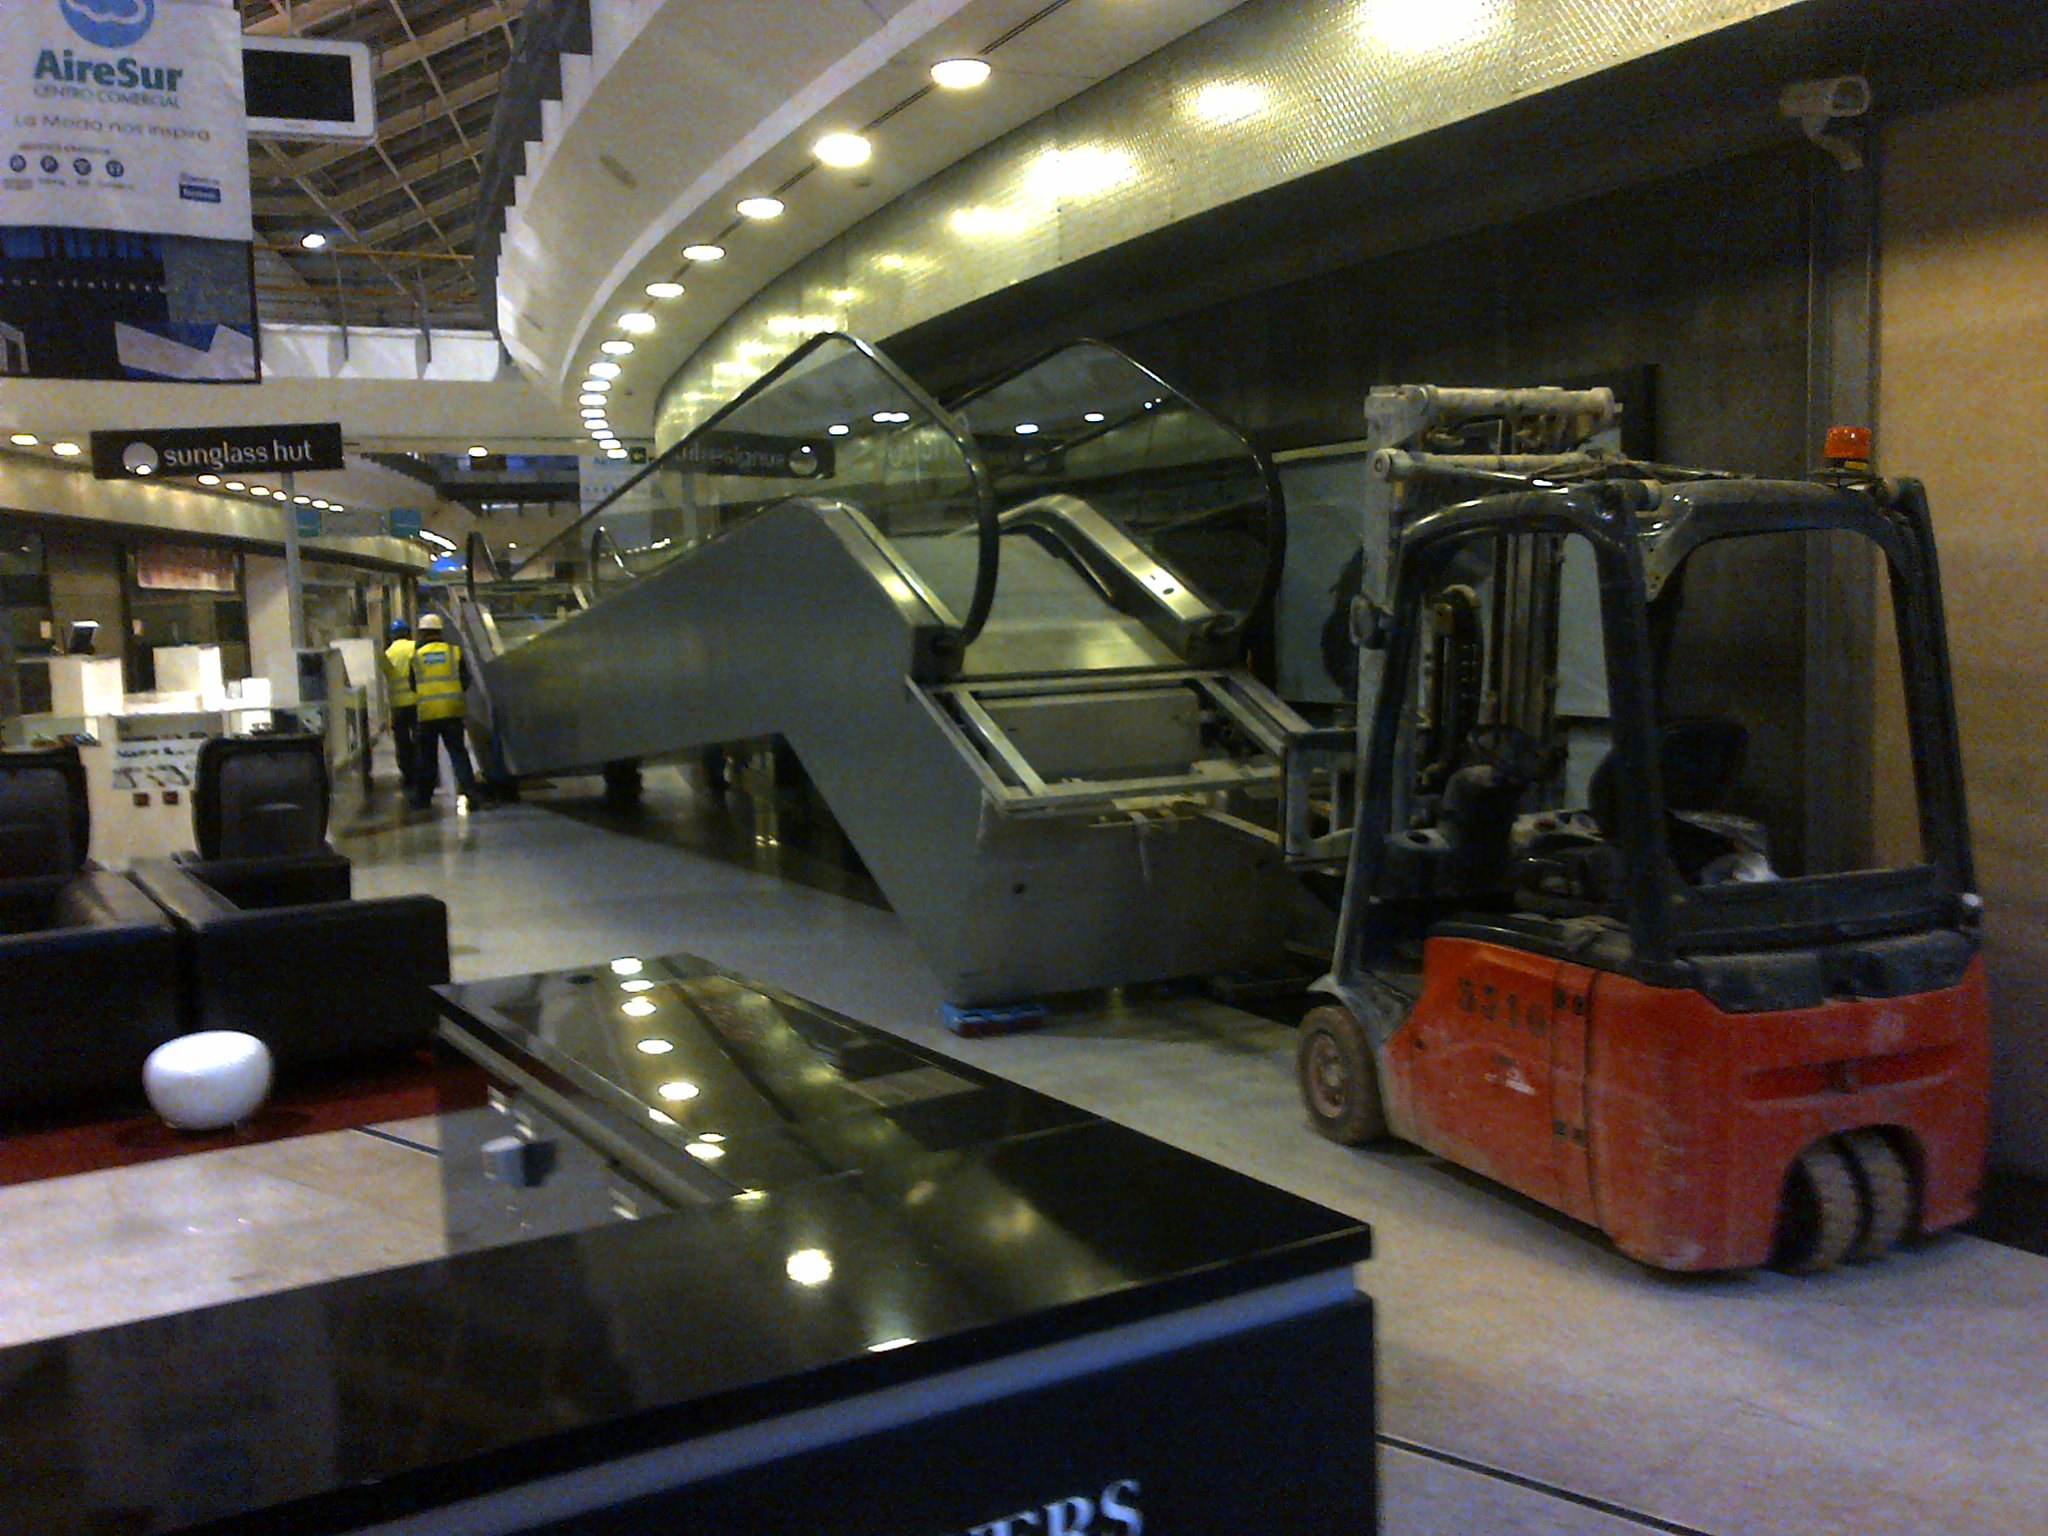 airesur_shopping_mall_kone_escalator_relocation_seville_2-jpg